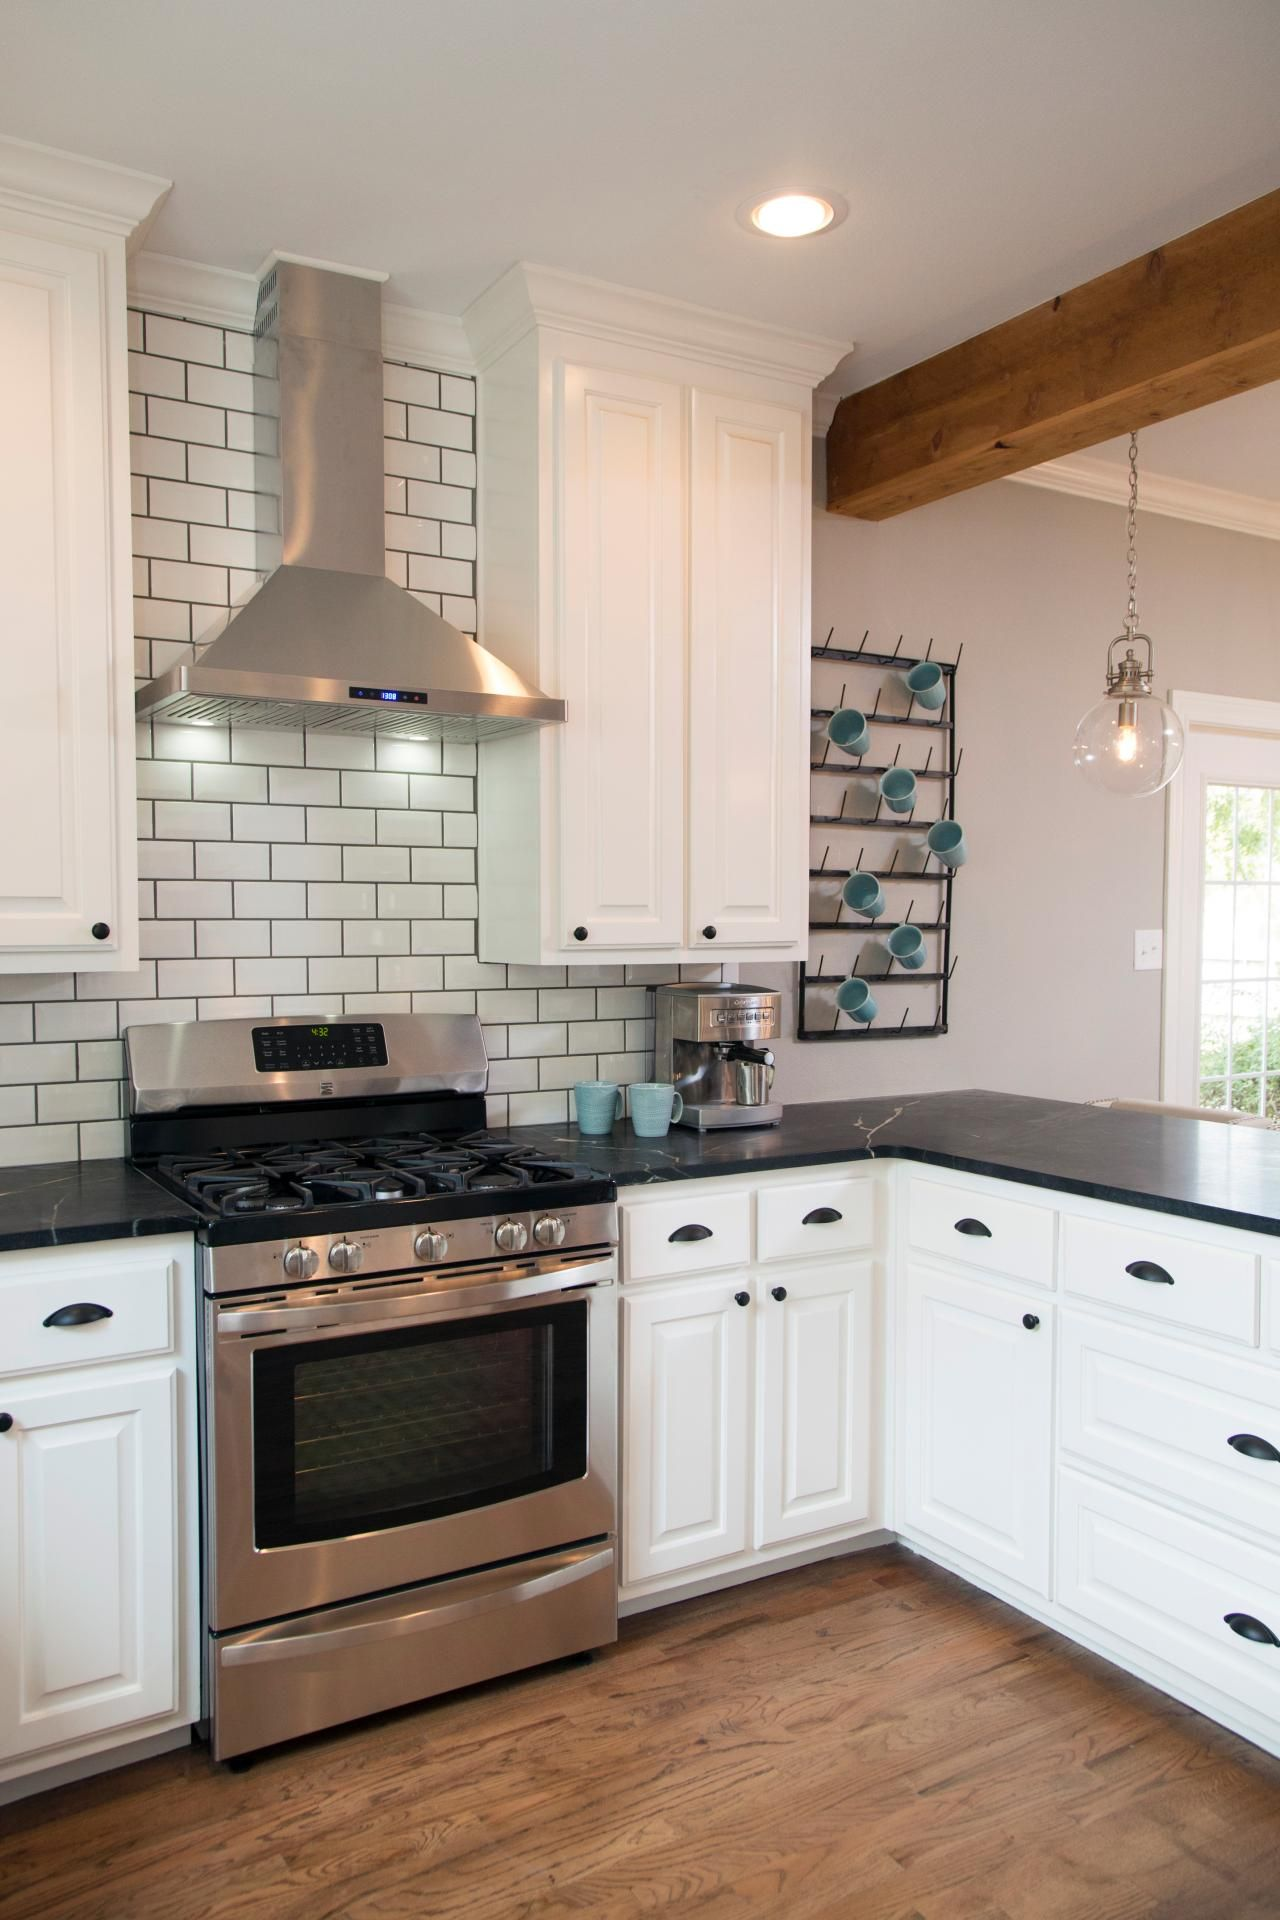 Fixer upper hosts chip and joanna gaines renovated the for Kitchen ideas joanna gaines